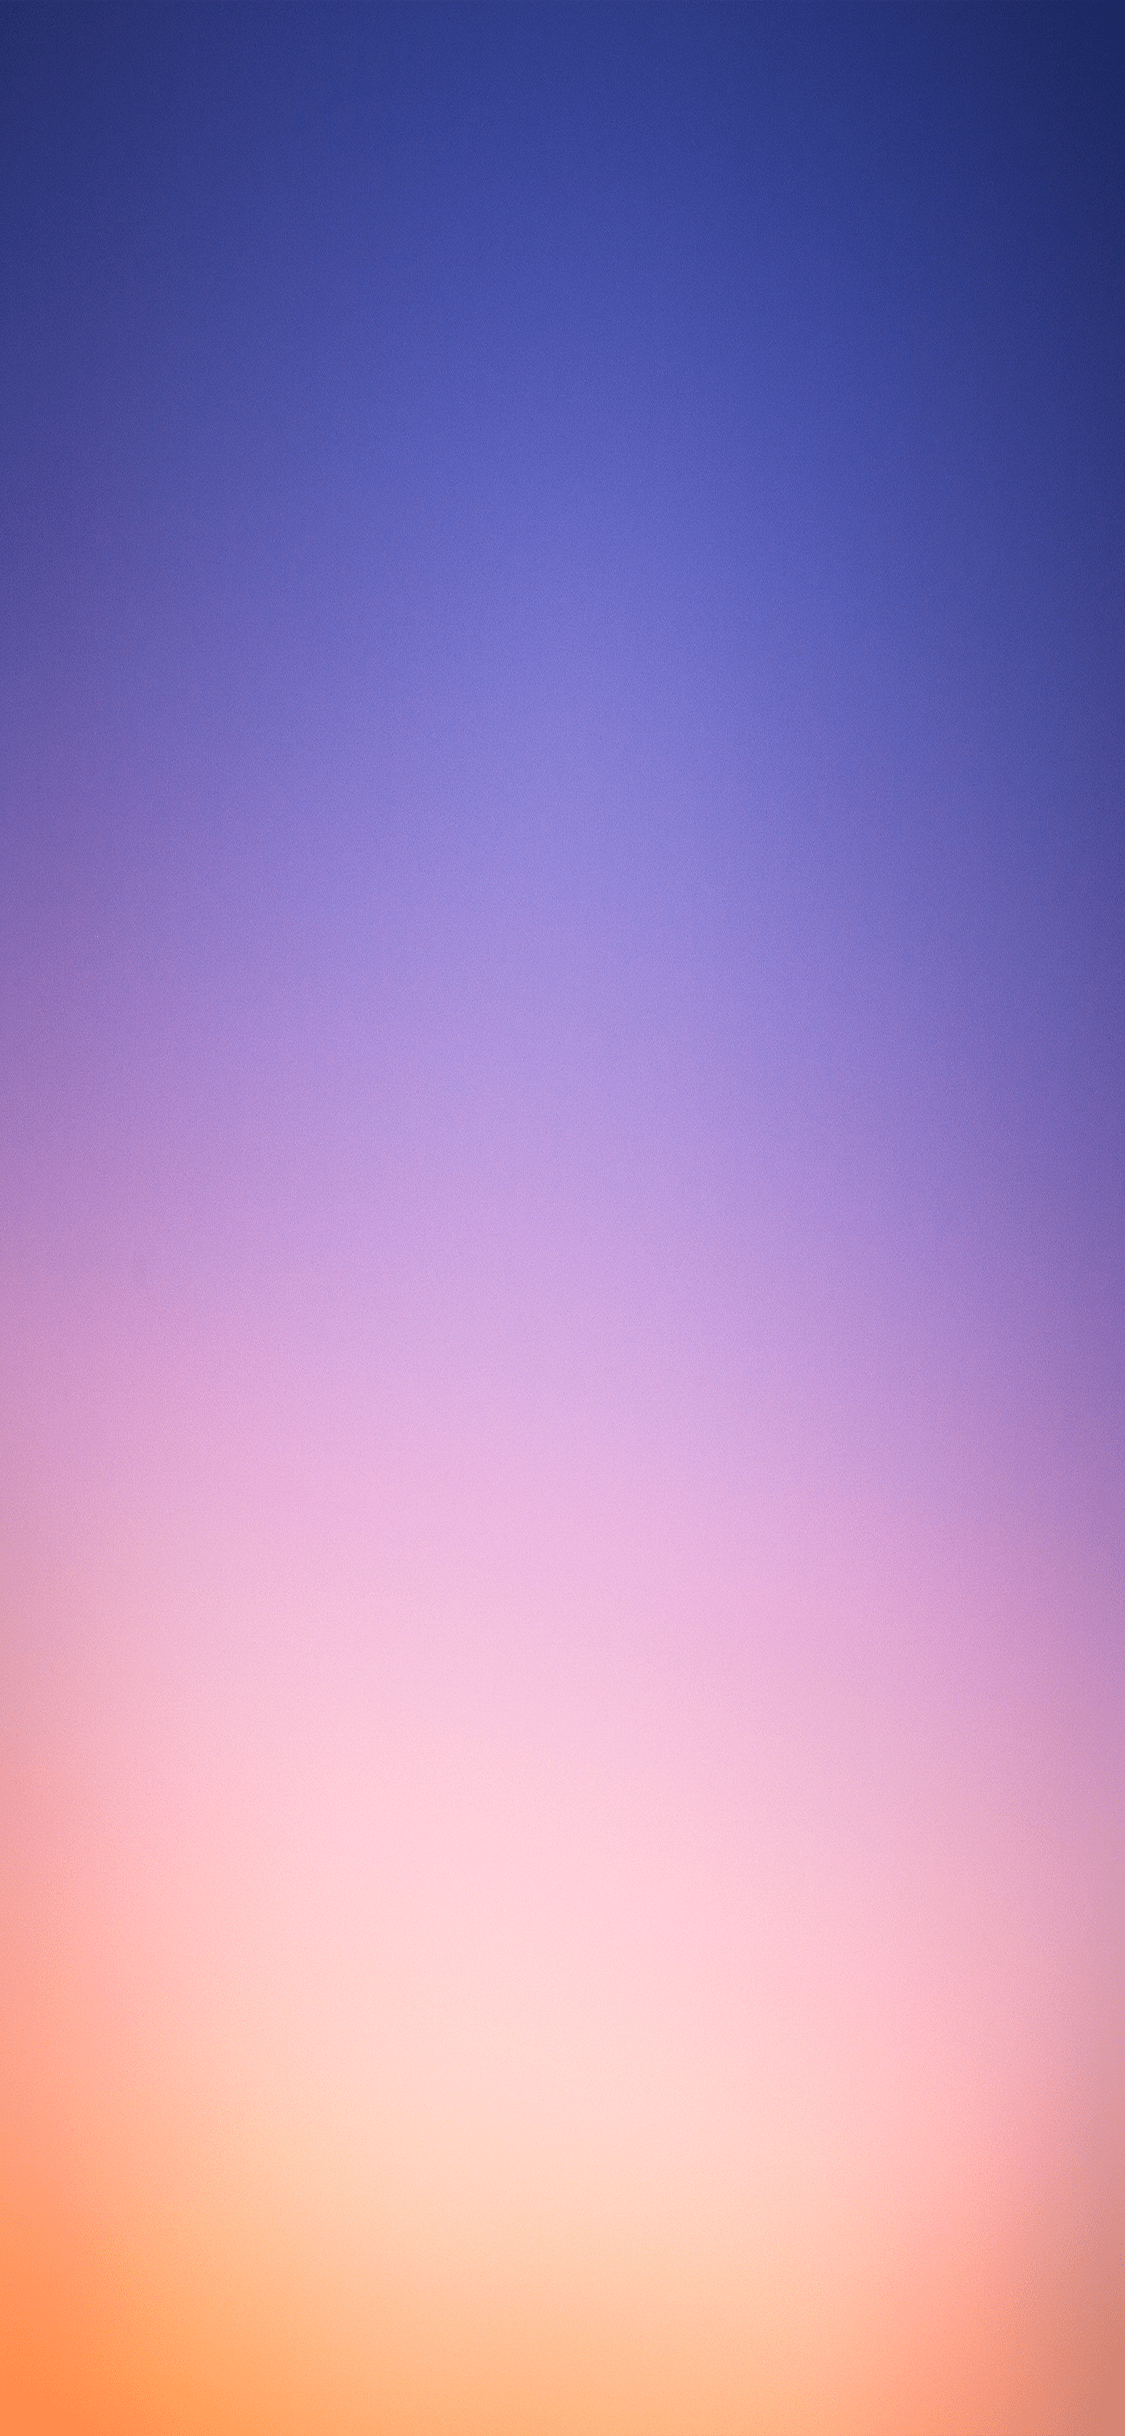 IPHONE X WALLPAPER ORIGINAL